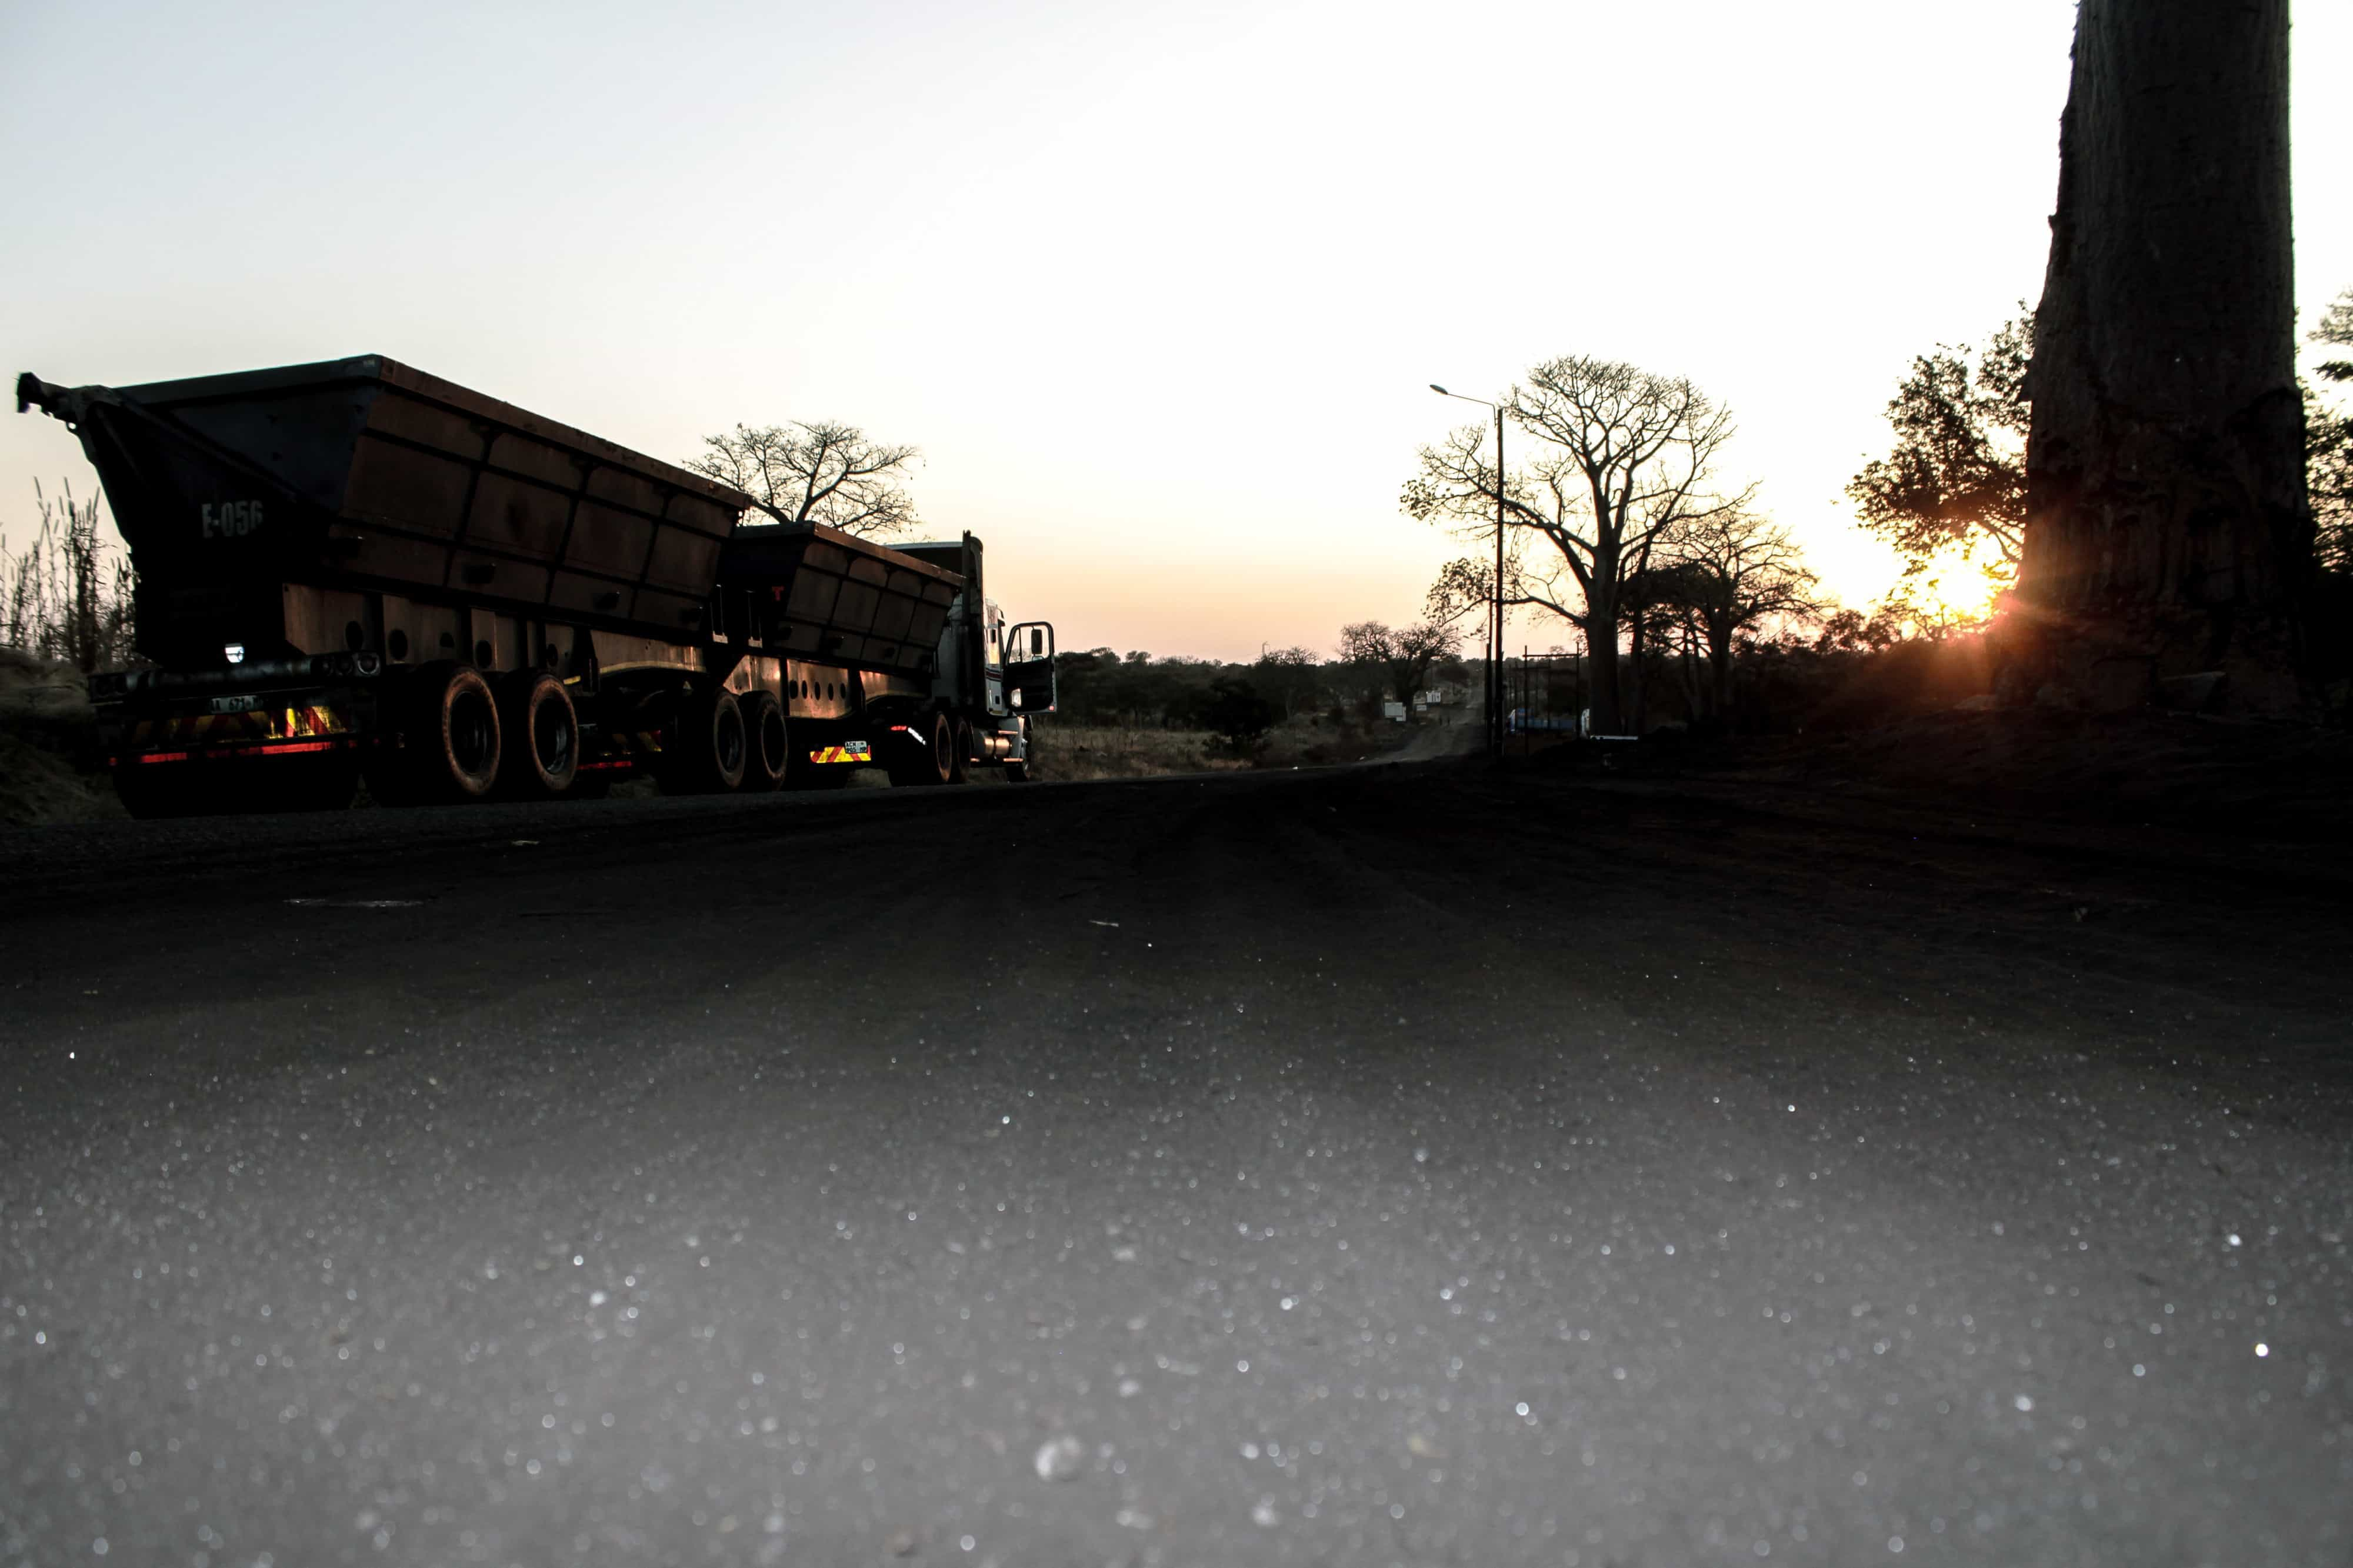 The road entrance to a Jindal coal mine in Tete Province, Mozambique, is full of coal dust. Photo: Jesper Kirkbak